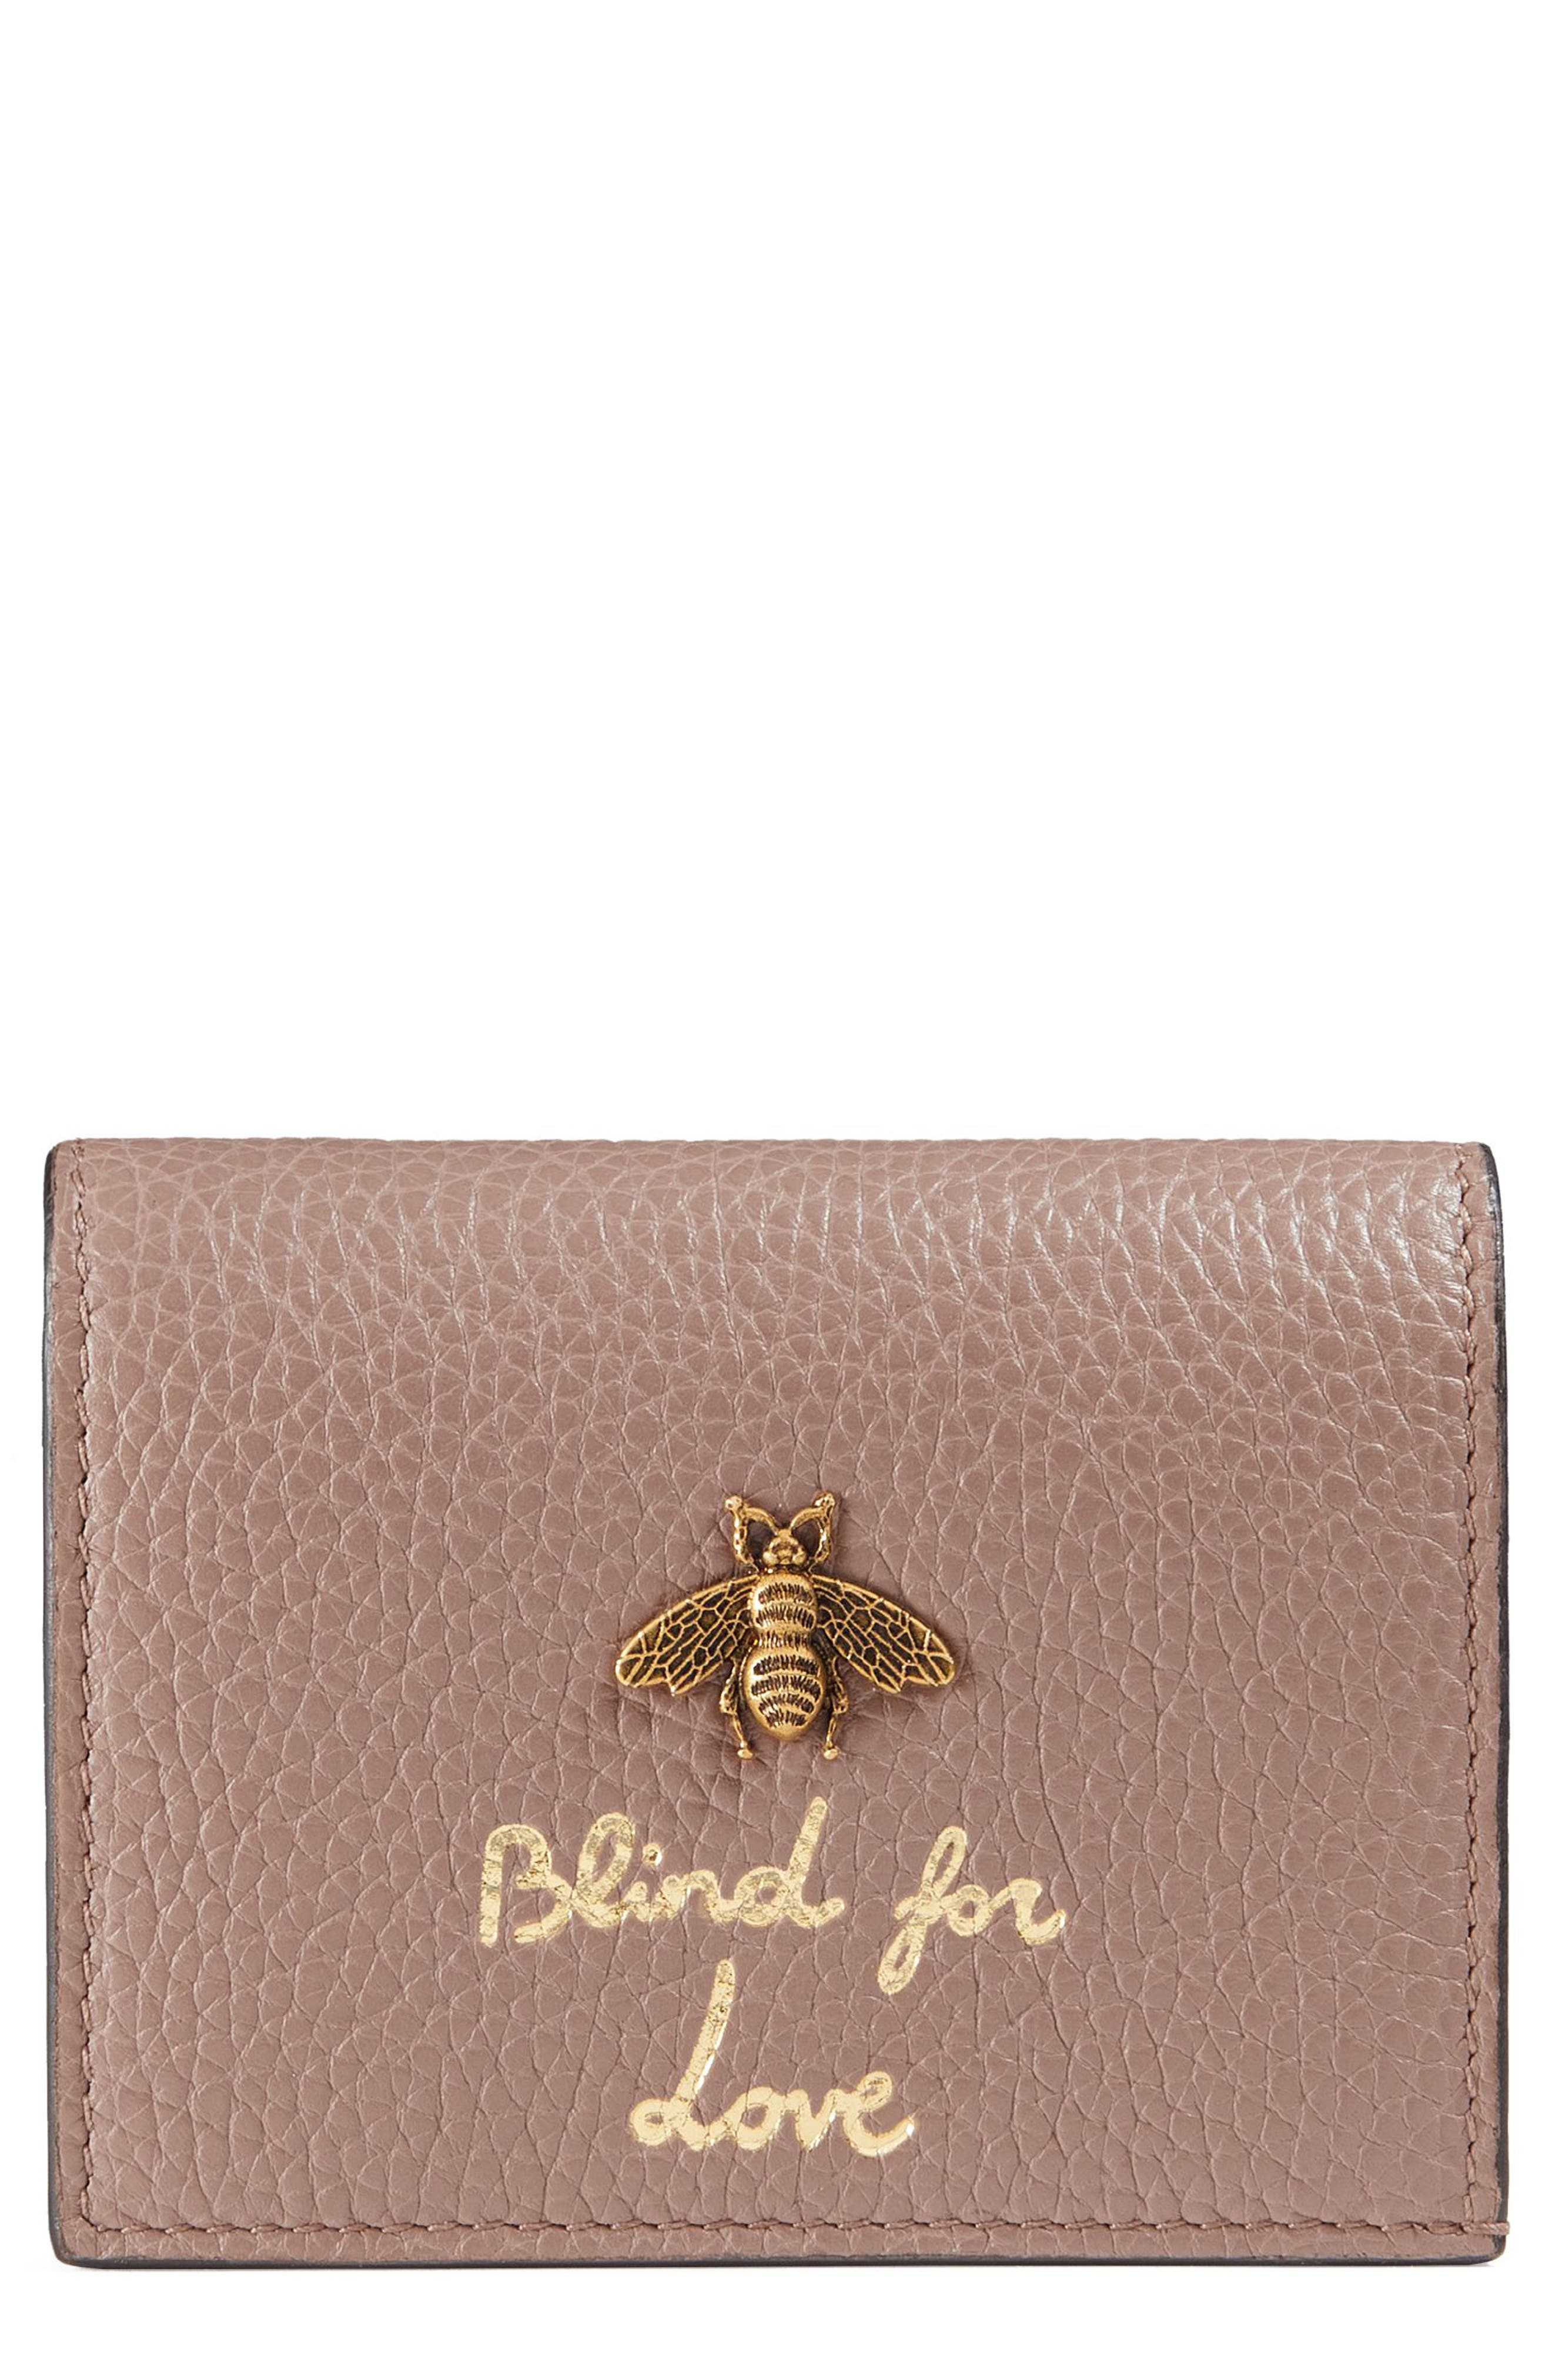 Animalier Bee Leather Card Case,                             Main thumbnail 1, color,